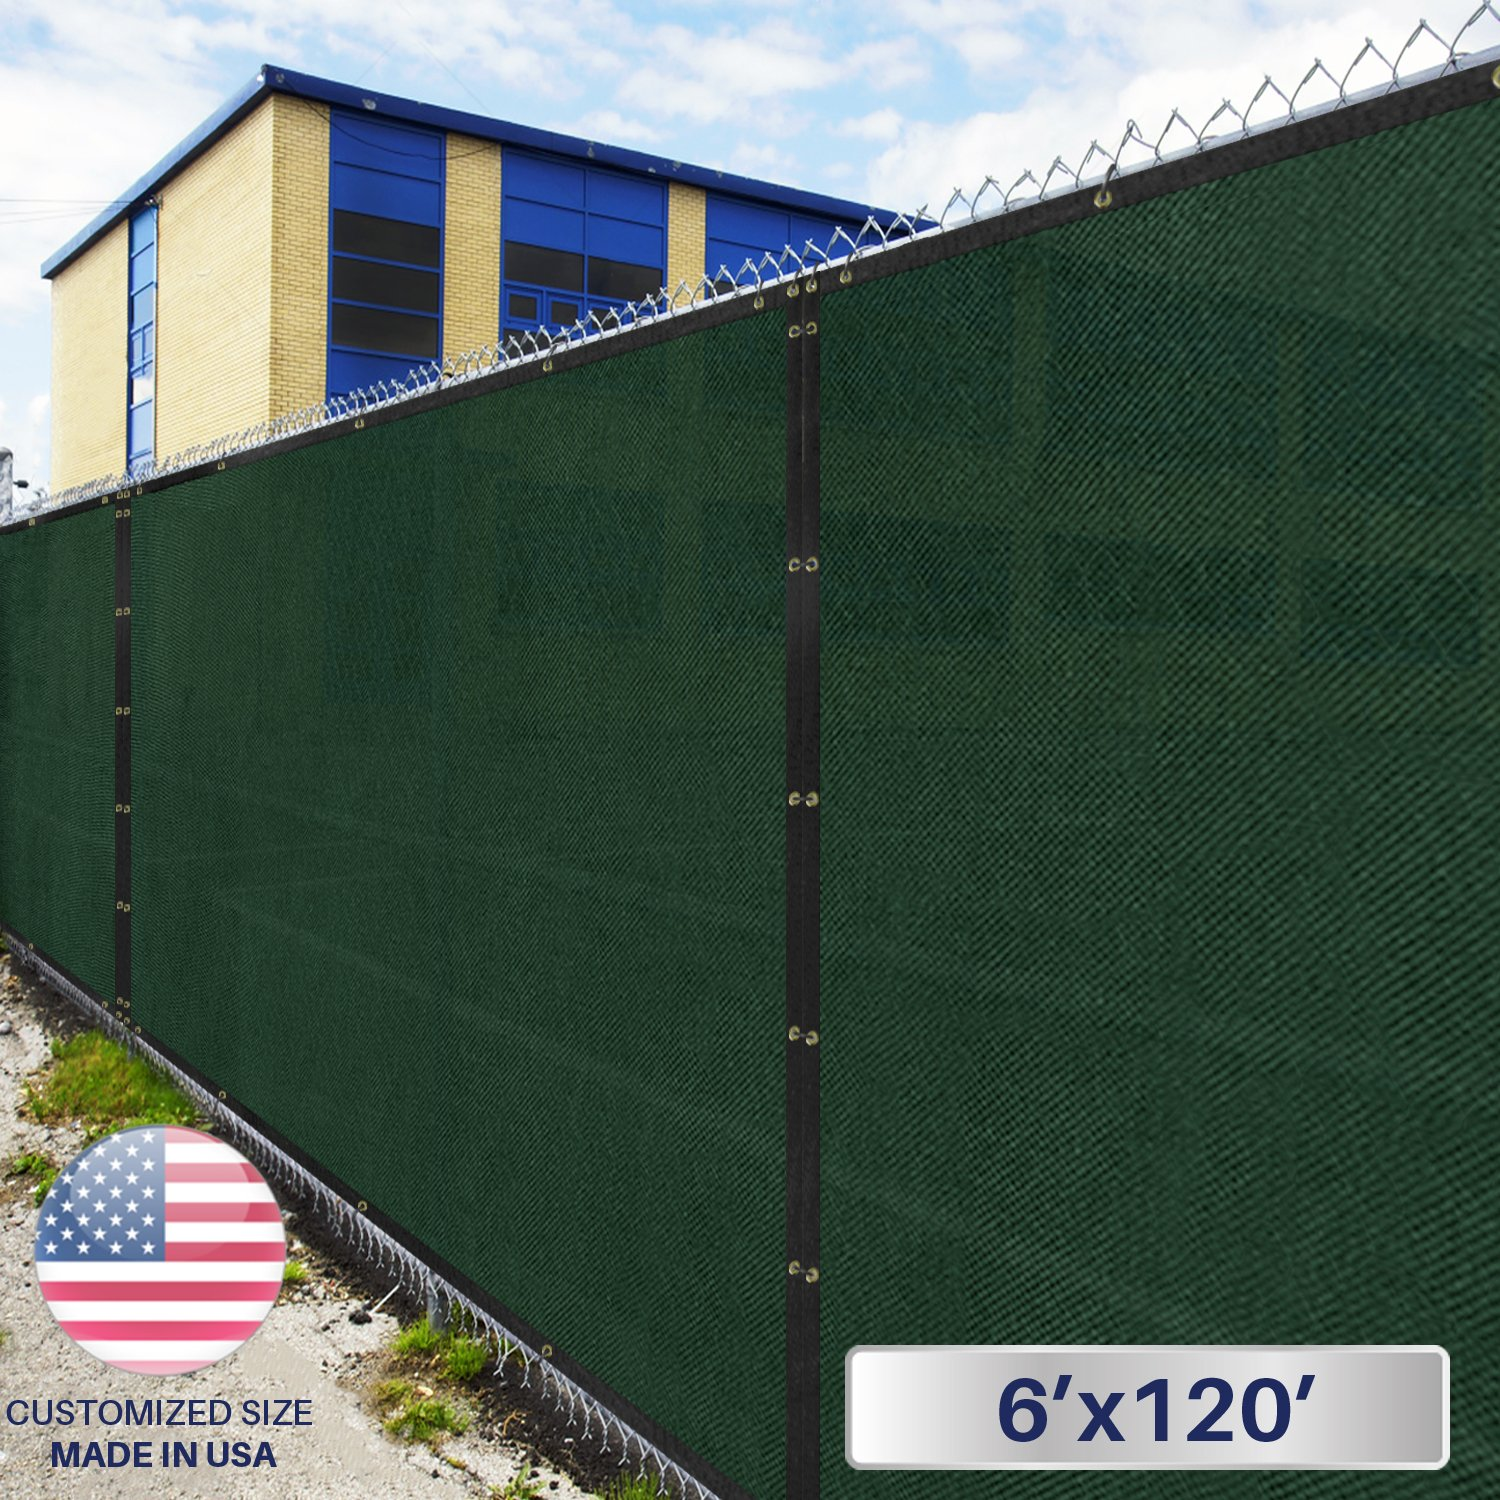 6' x 120' Privacy Fence Screen in Green with Brass Grommet 85% Blockage Windscreen Outdoor Mesh Fencing Cover Netting 150GSM Fabric - Custom Size